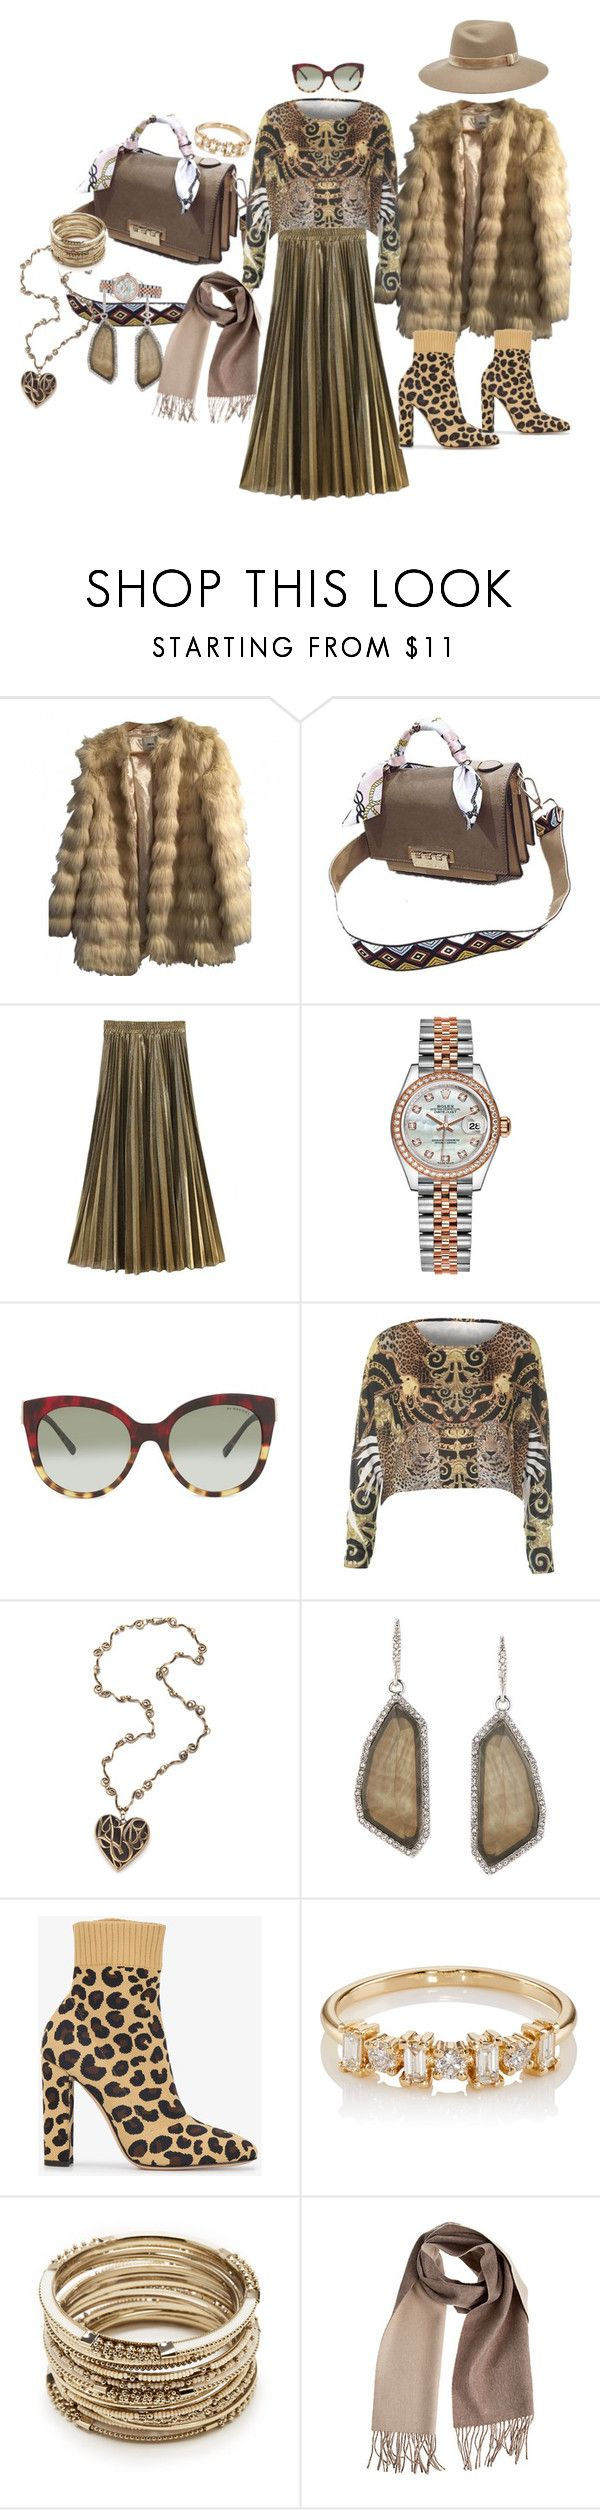 """Bringing up the old ways doesn't help now"" by blujay1126 ❤ liked on Polyvore featuring ASOS, Rolex, Burberry, Chloe + Isabel, Gianvito Rossi, Ileana Makri, Sole Society, Overland Sheepskin Co. and rag & bone"